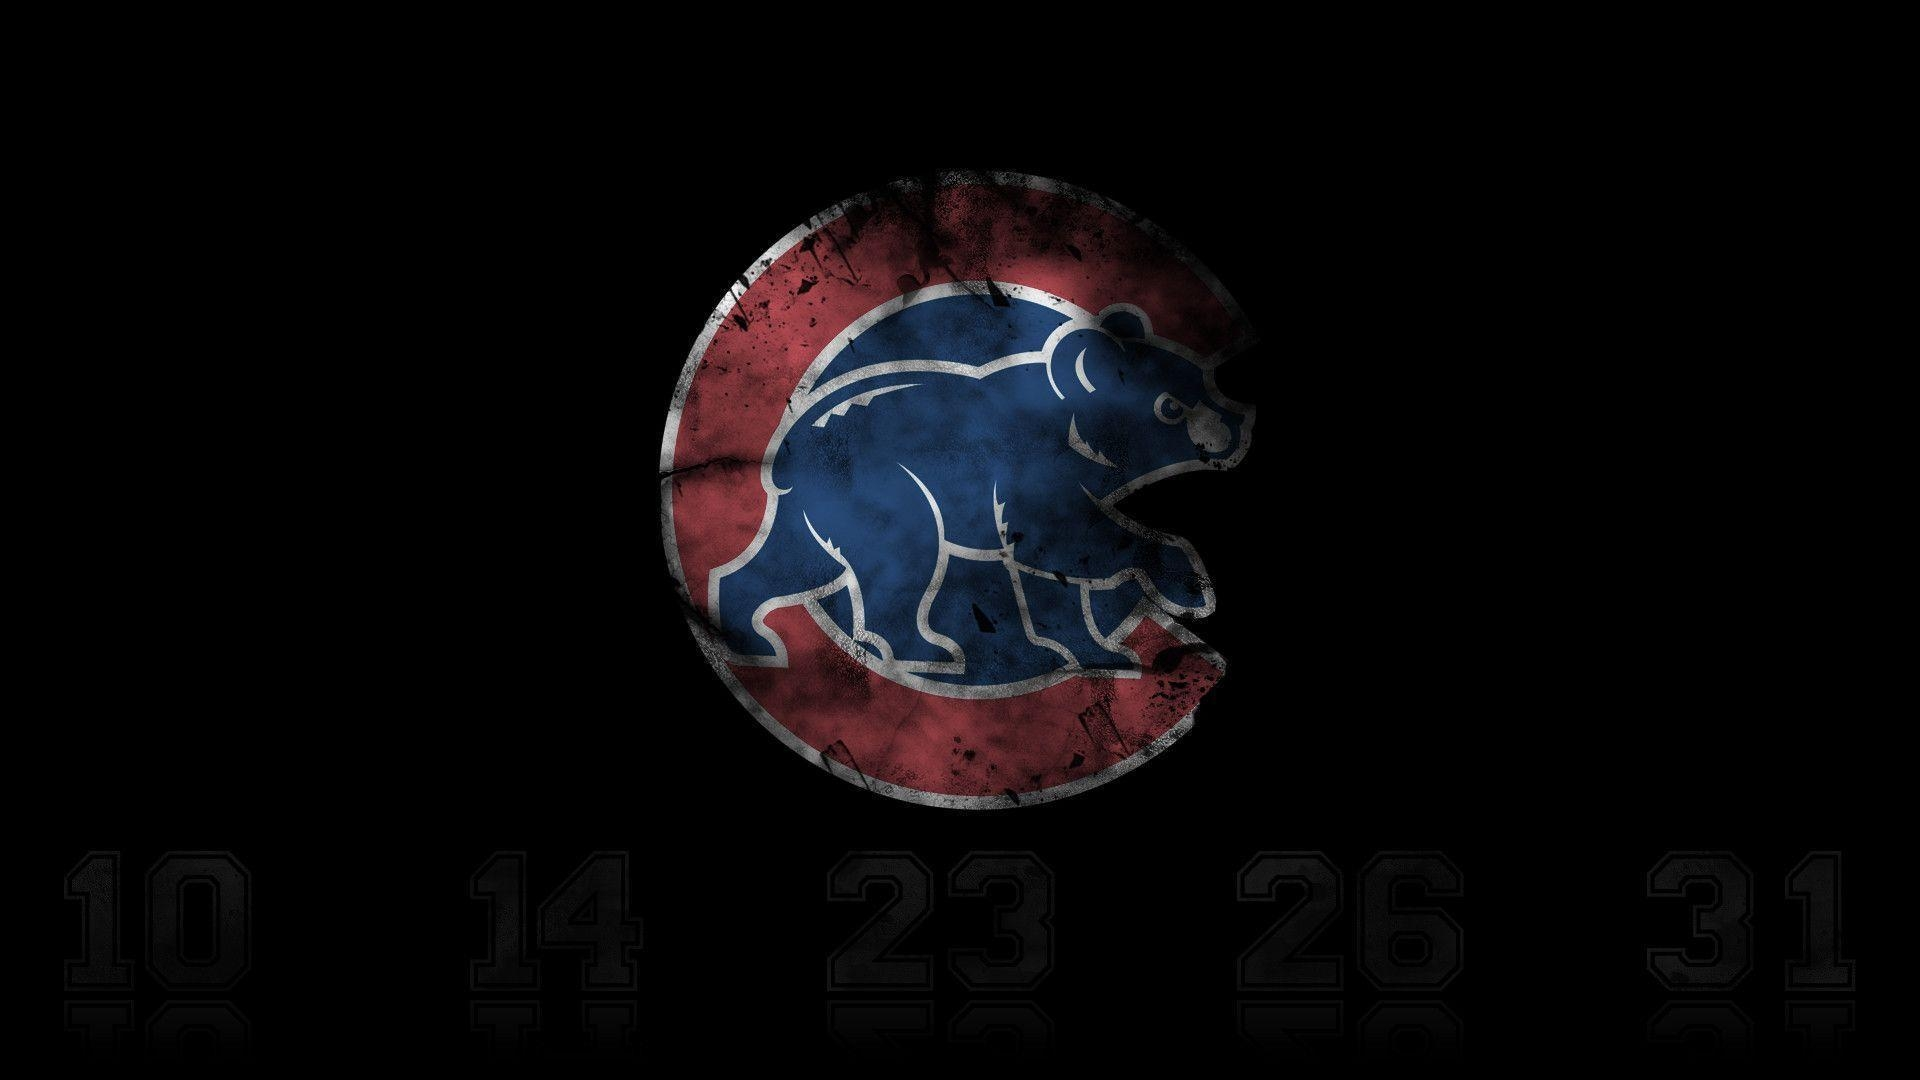 1920x1080 - Chicago Cubs Wallpapers 21